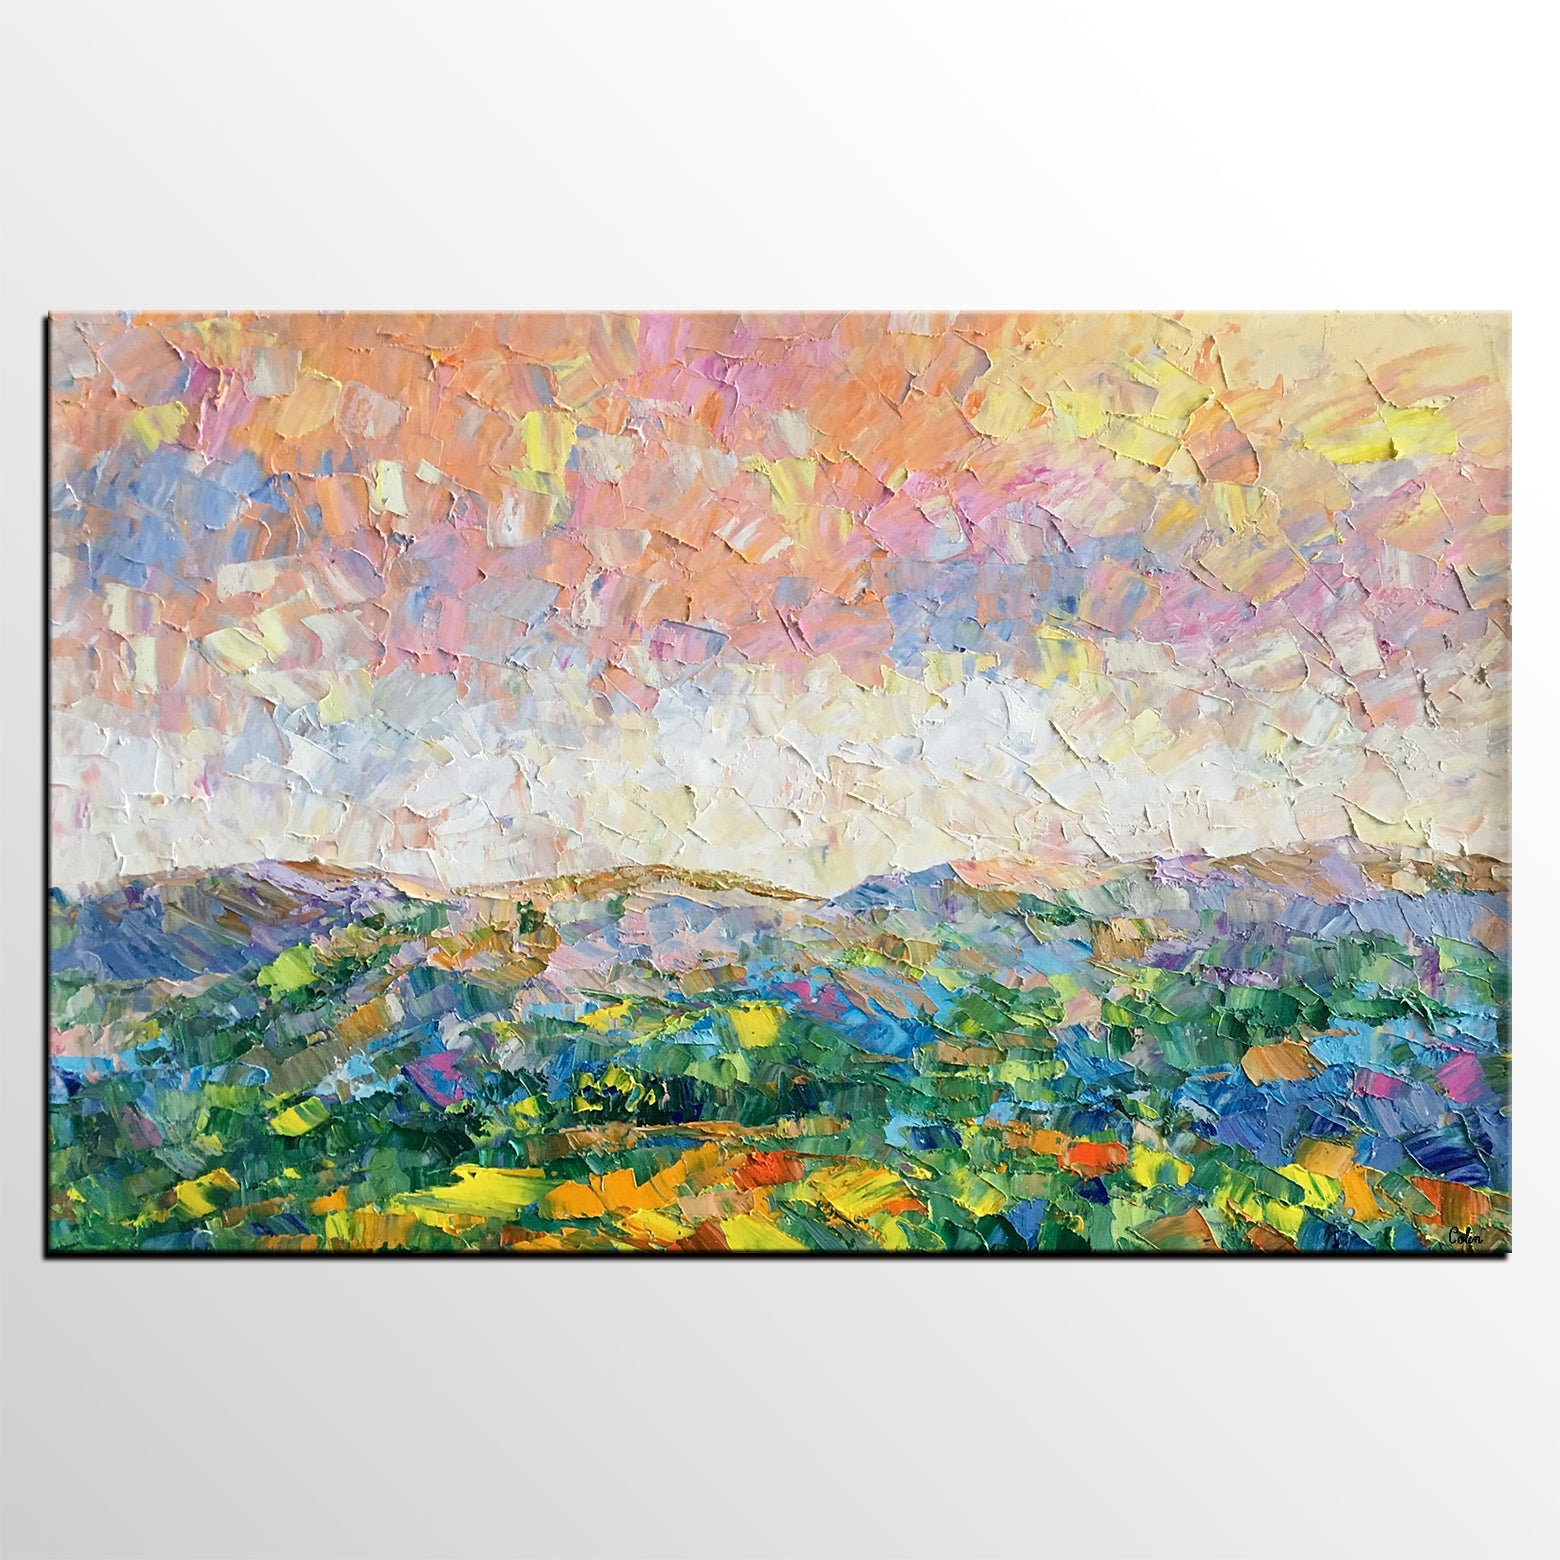 Mountain and Sky Painting, Landscape Painting, Custom Oil Painting Painting, Living Room Wall Art, Canvas Painting - artworkcanvas